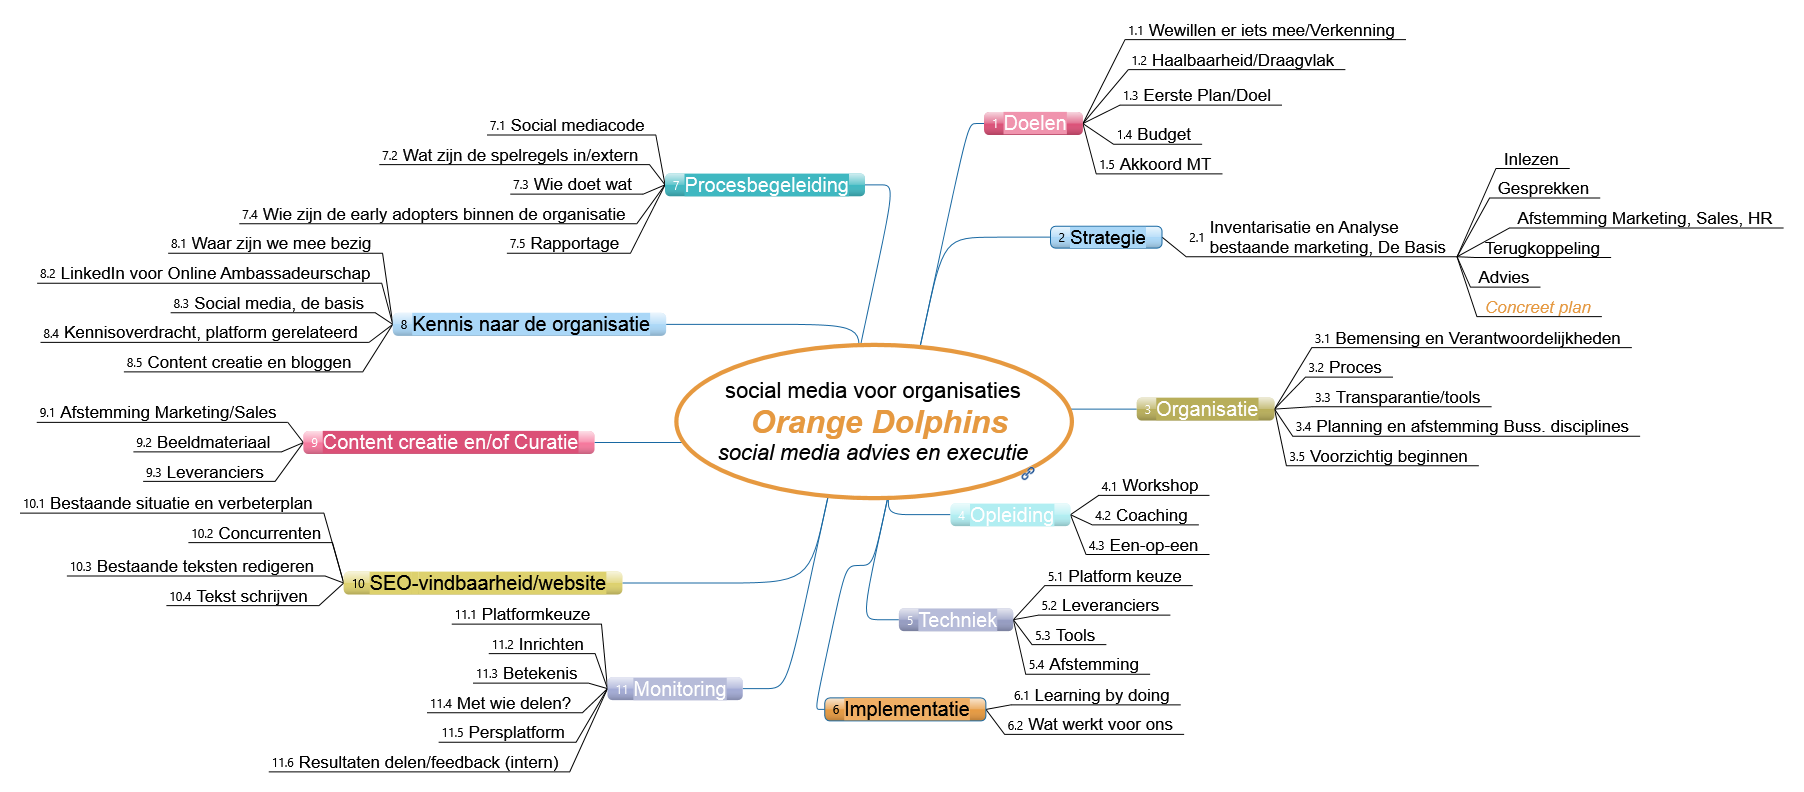 linkedin en social media voor organisaties Orange Dolphins social